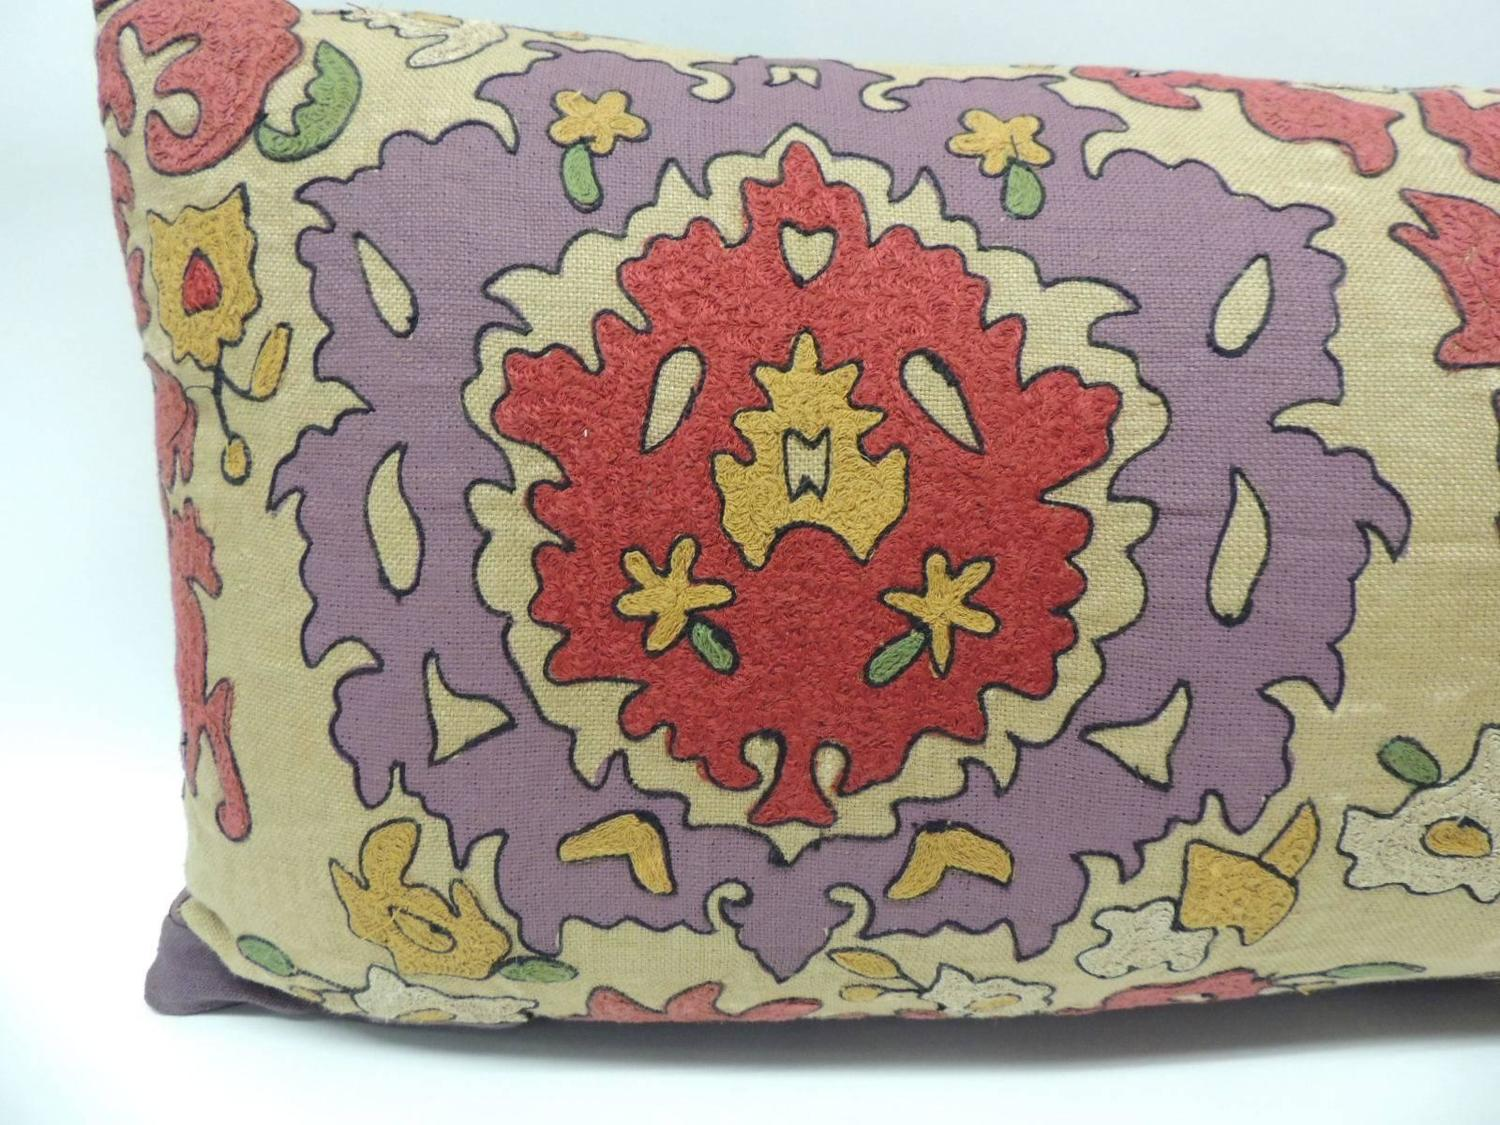 Large Decorative Bolster Pillows : 19th Century Long Uzbek Vintage Suzani Large Bolster Decorative Pillow For Sale at 1stdibs